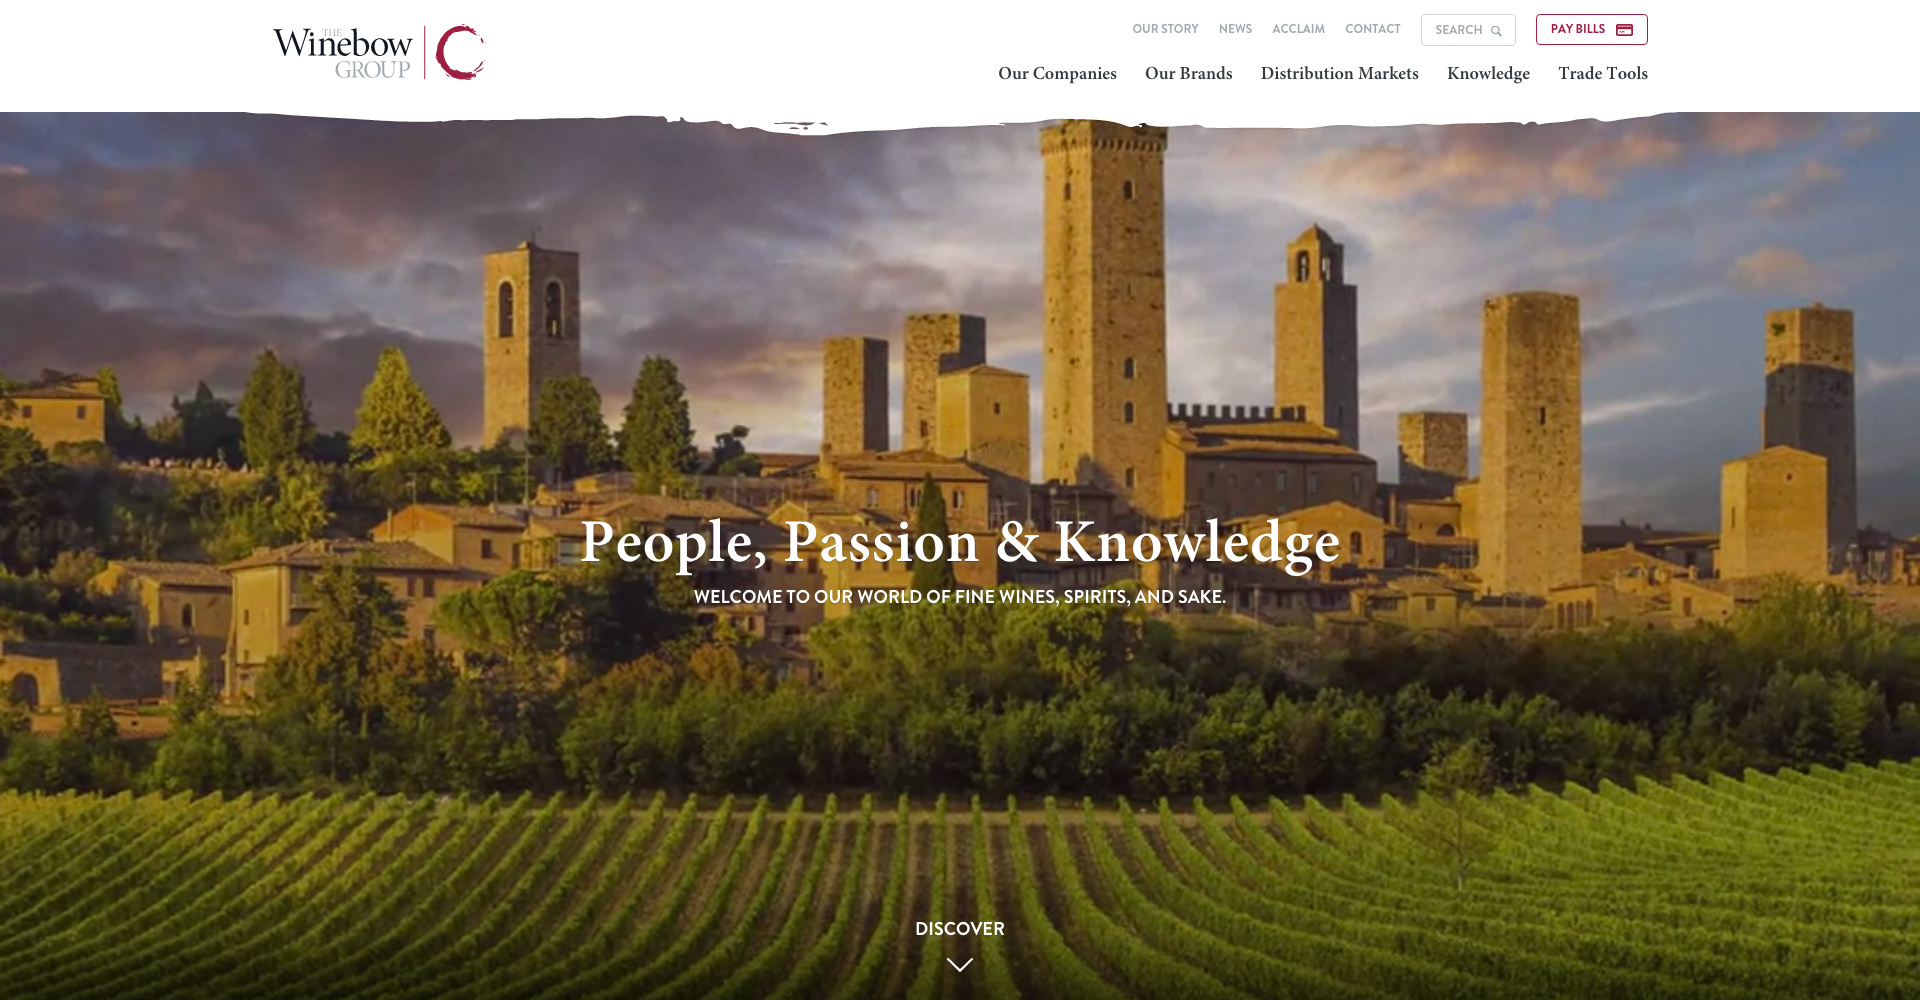 the winebow group home page